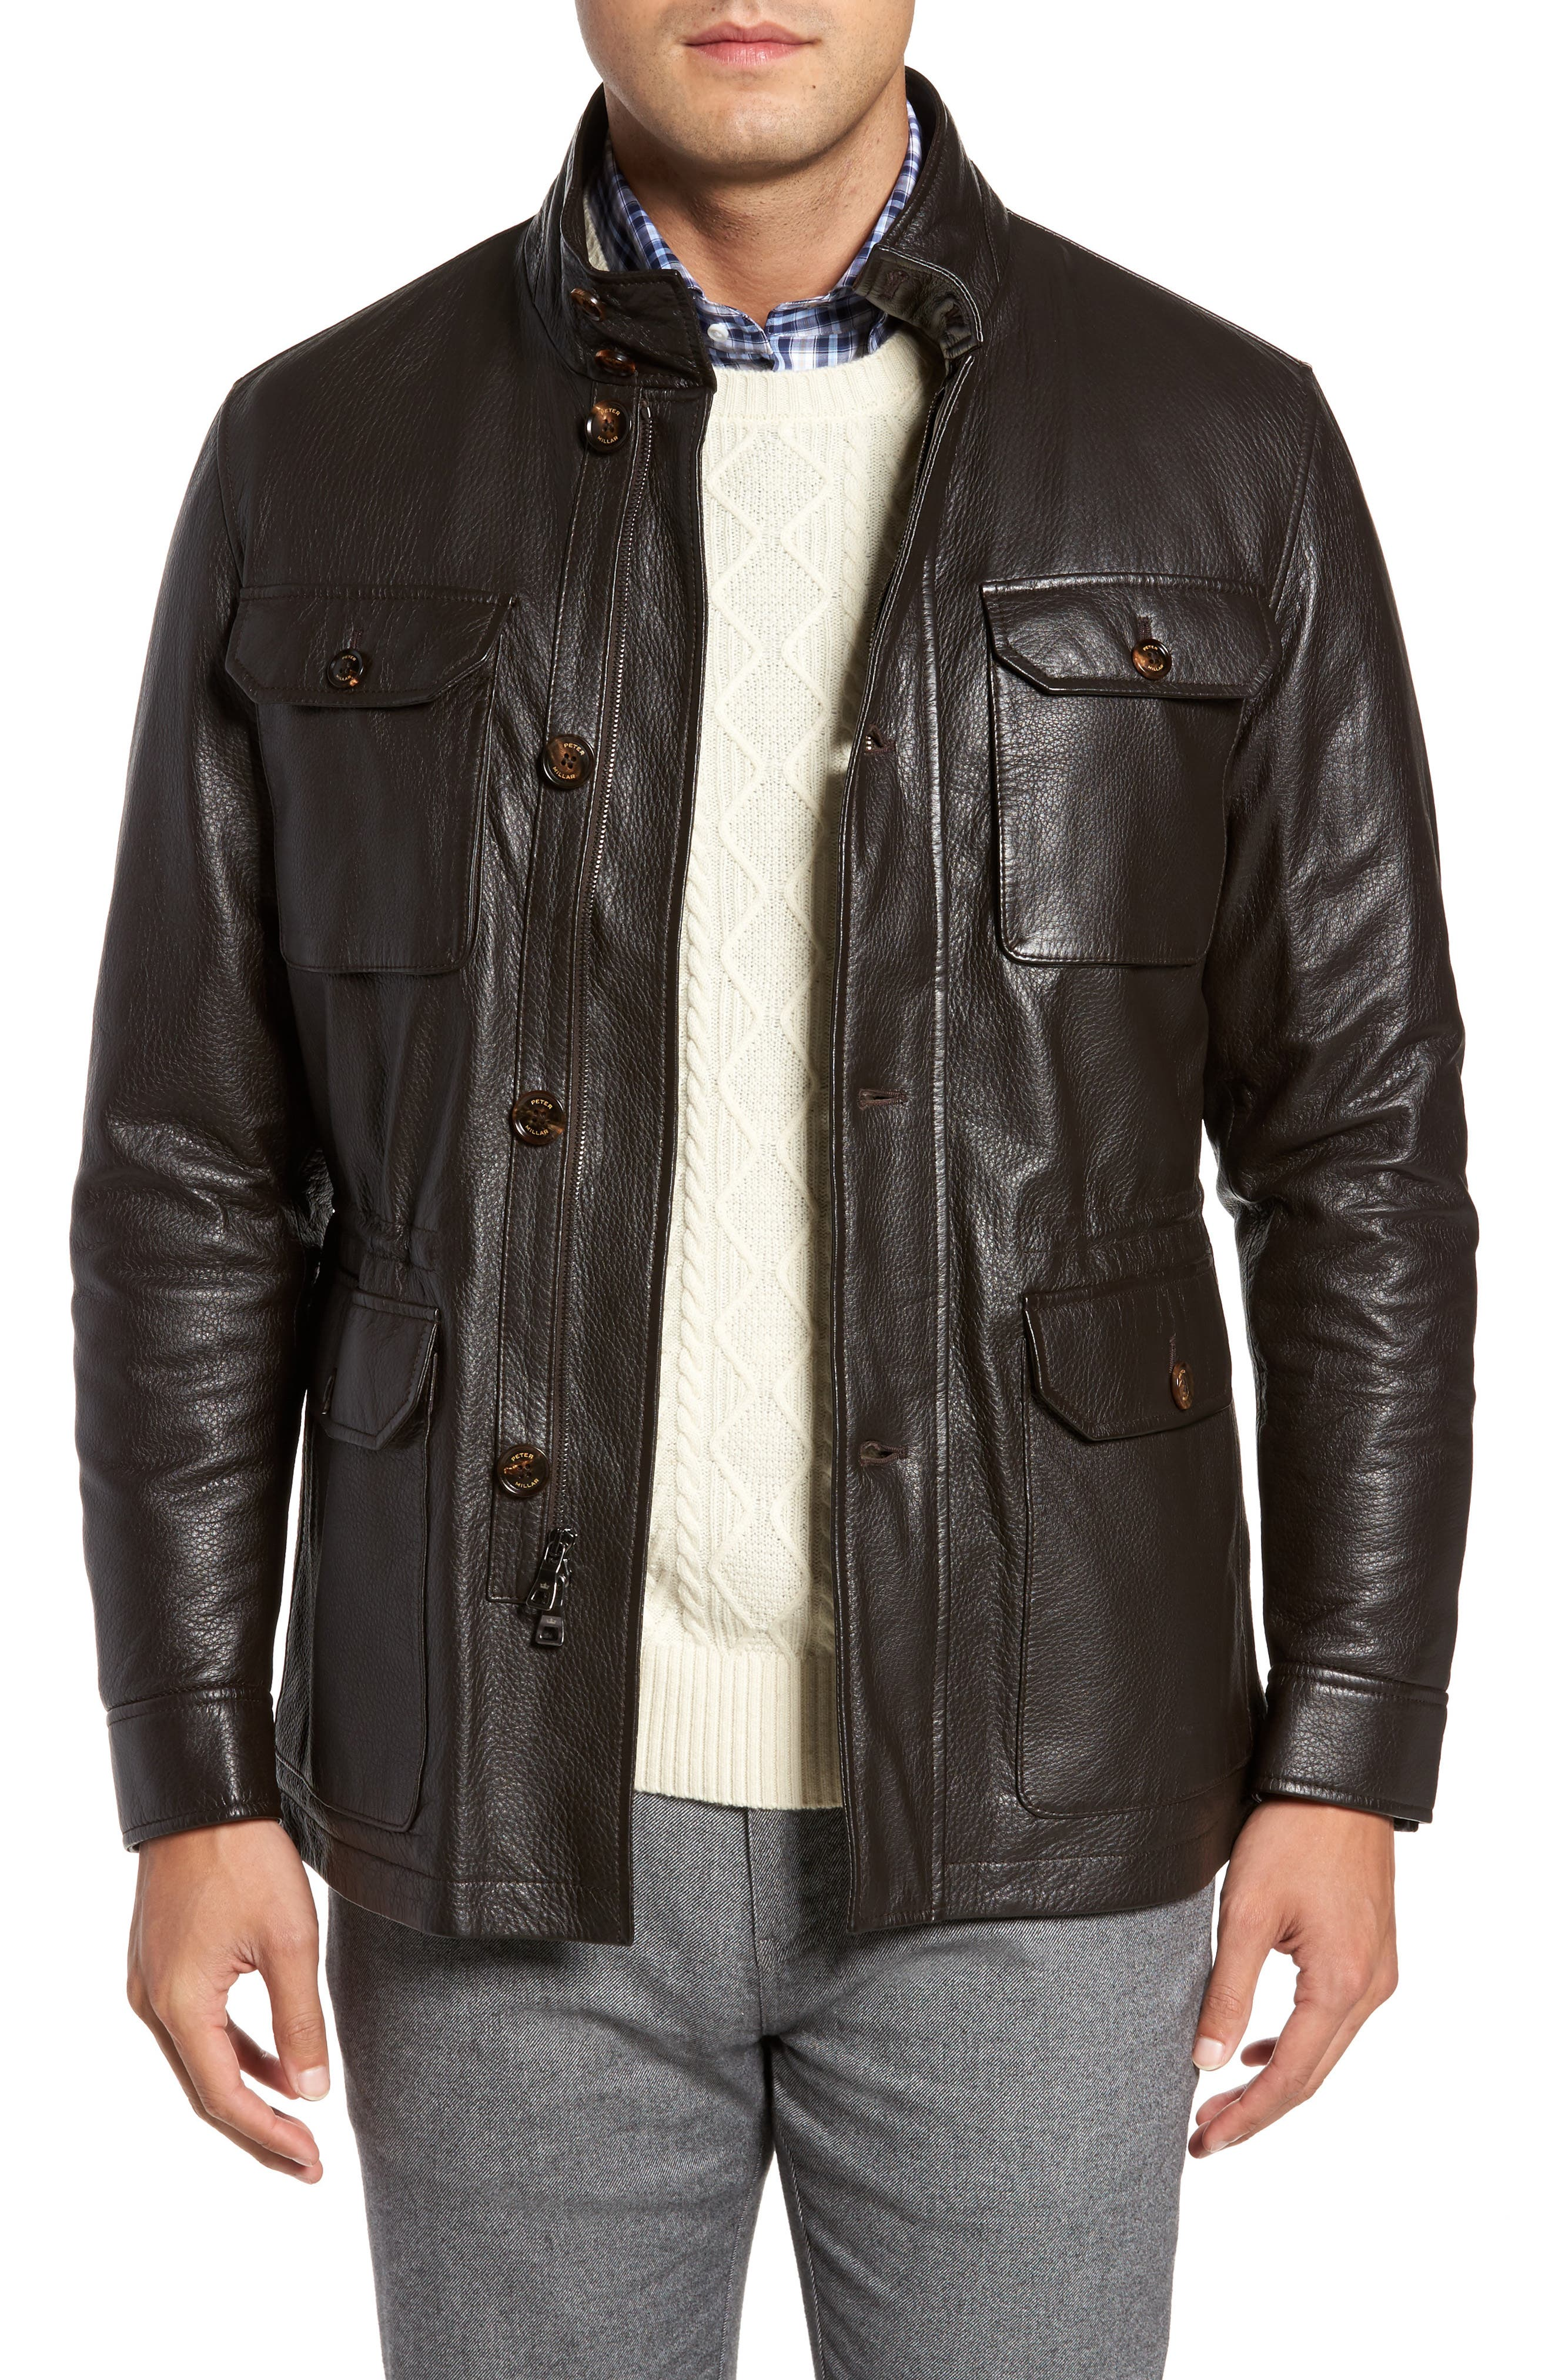 Woodland Discovery Deerskin Leather Jacket,                             Main thumbnail 1, color,                             Espresso